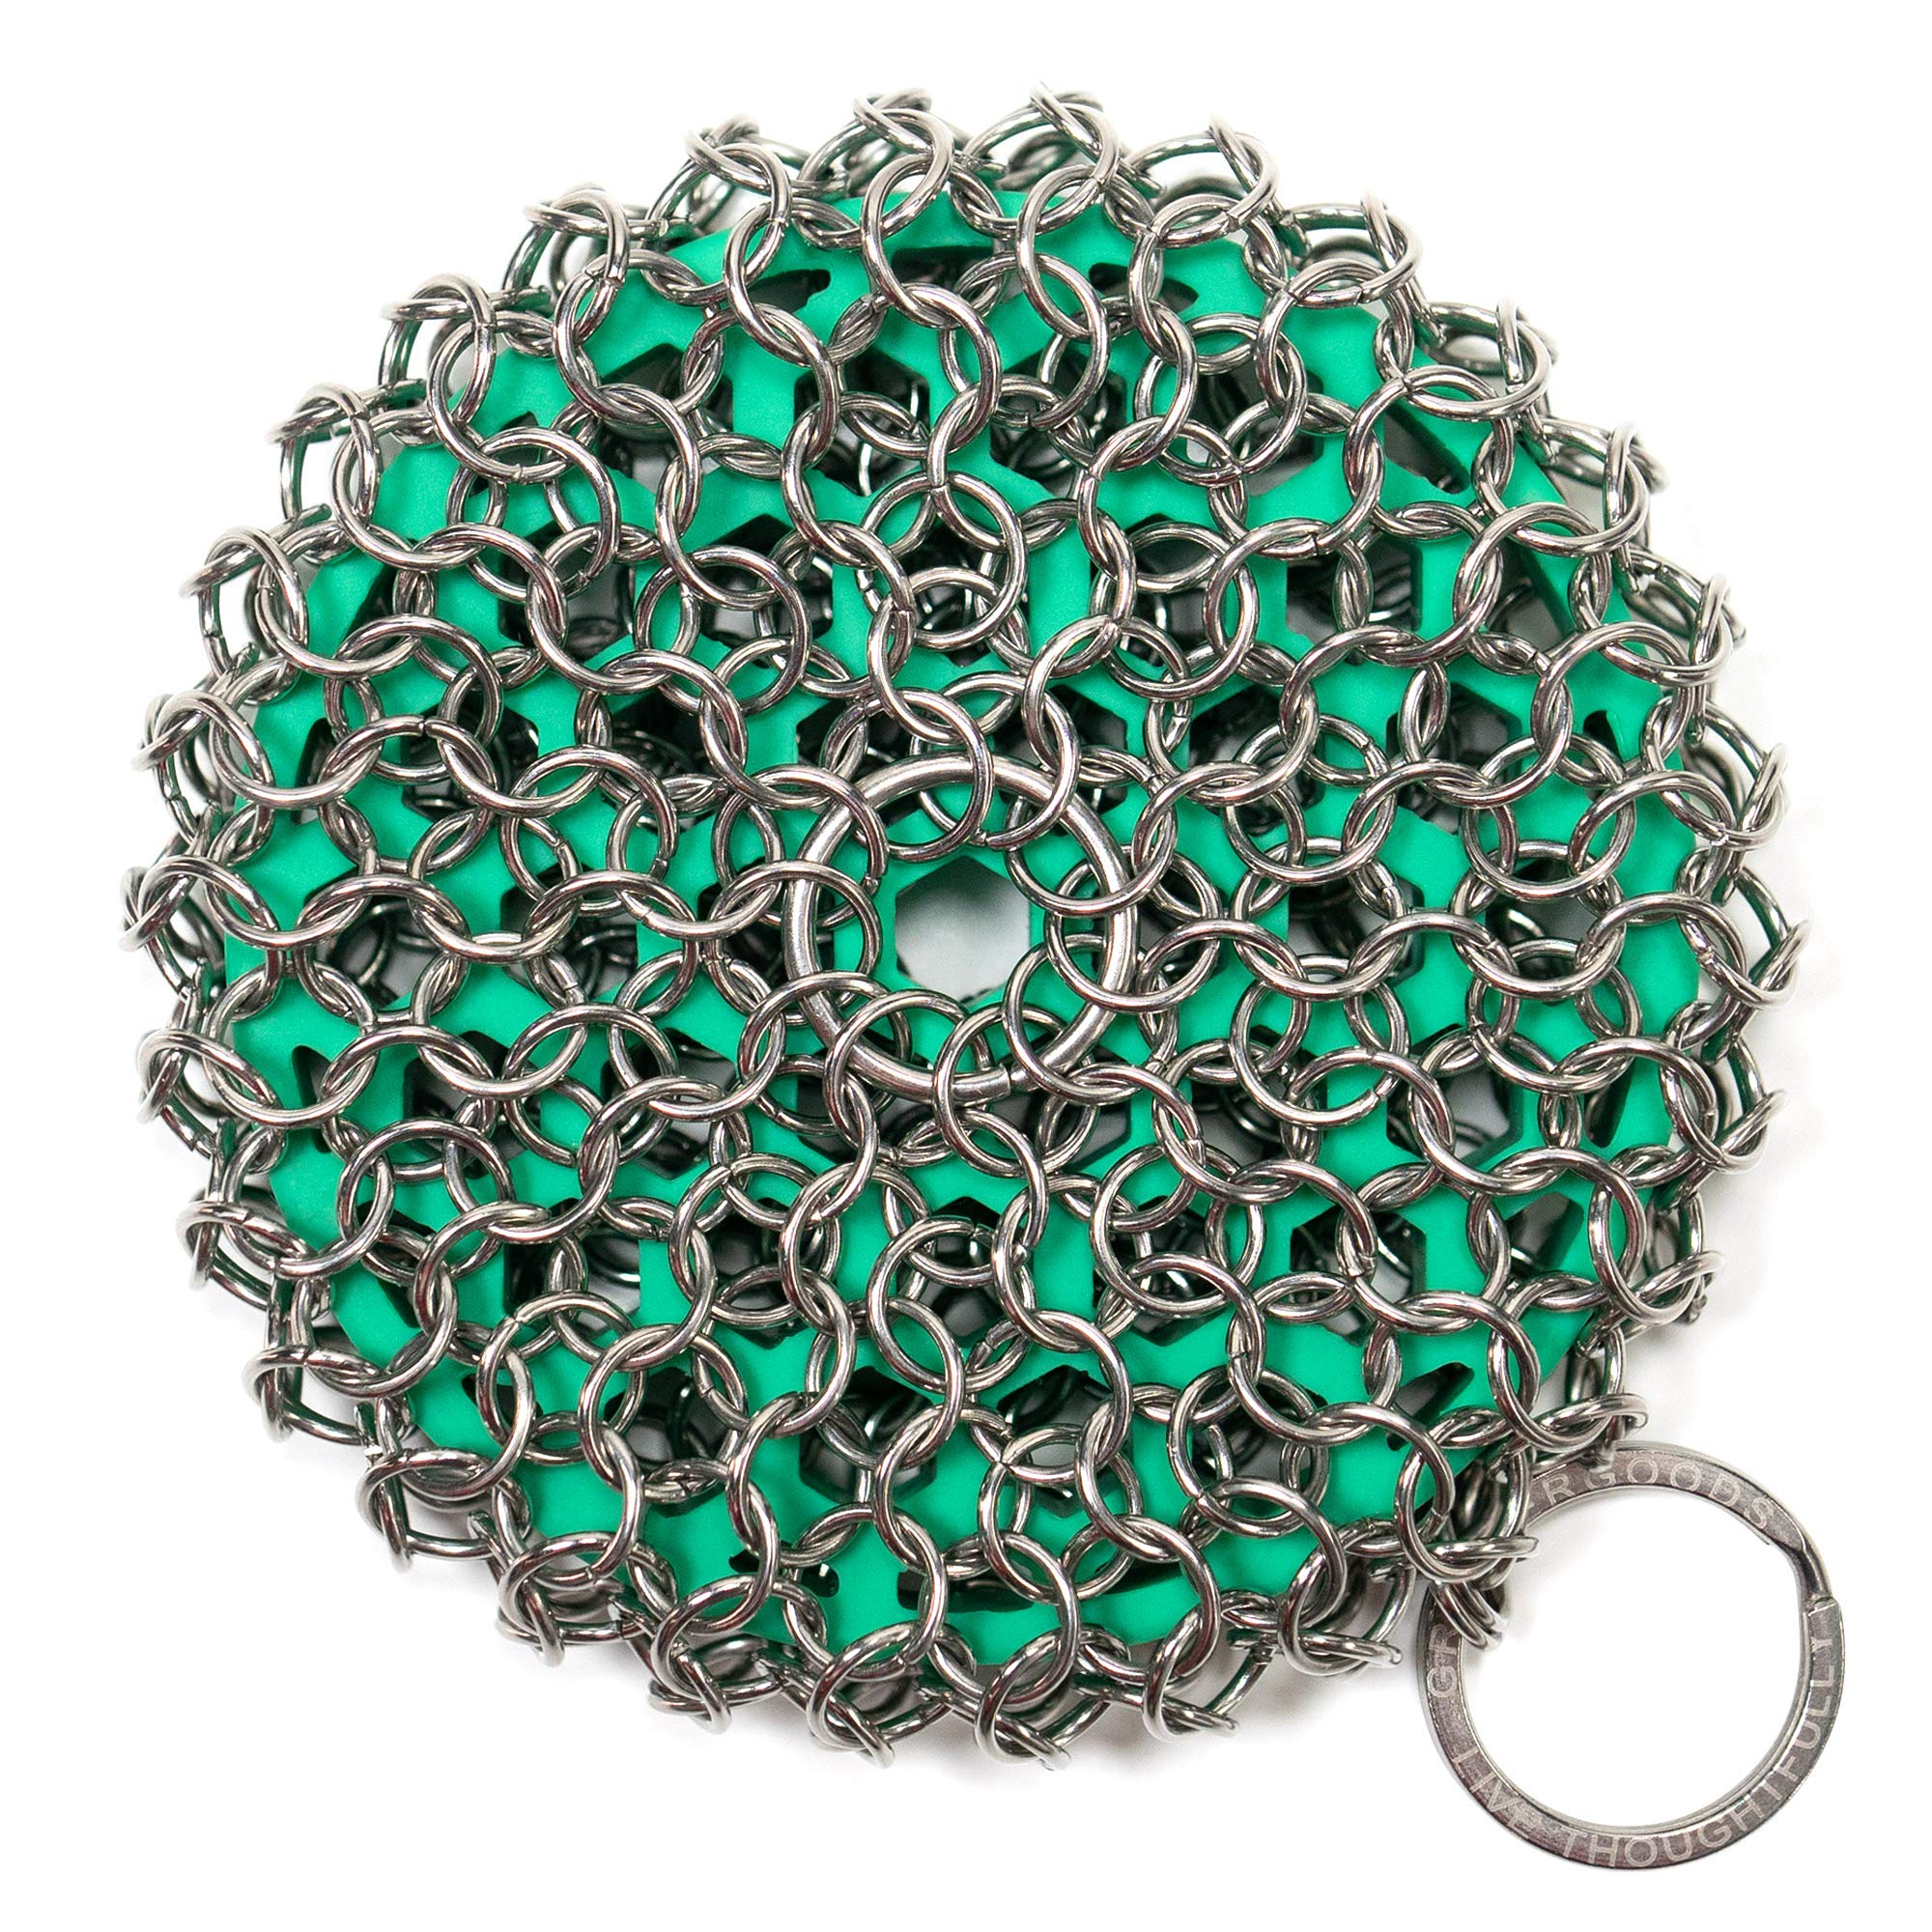 GreaterGoods Cast Iron Chainmail Scrubber, Easy on Your Hands, Dishwasher Safe, Cleaner Scraper & Scrubber for your Cast Iron Skillet